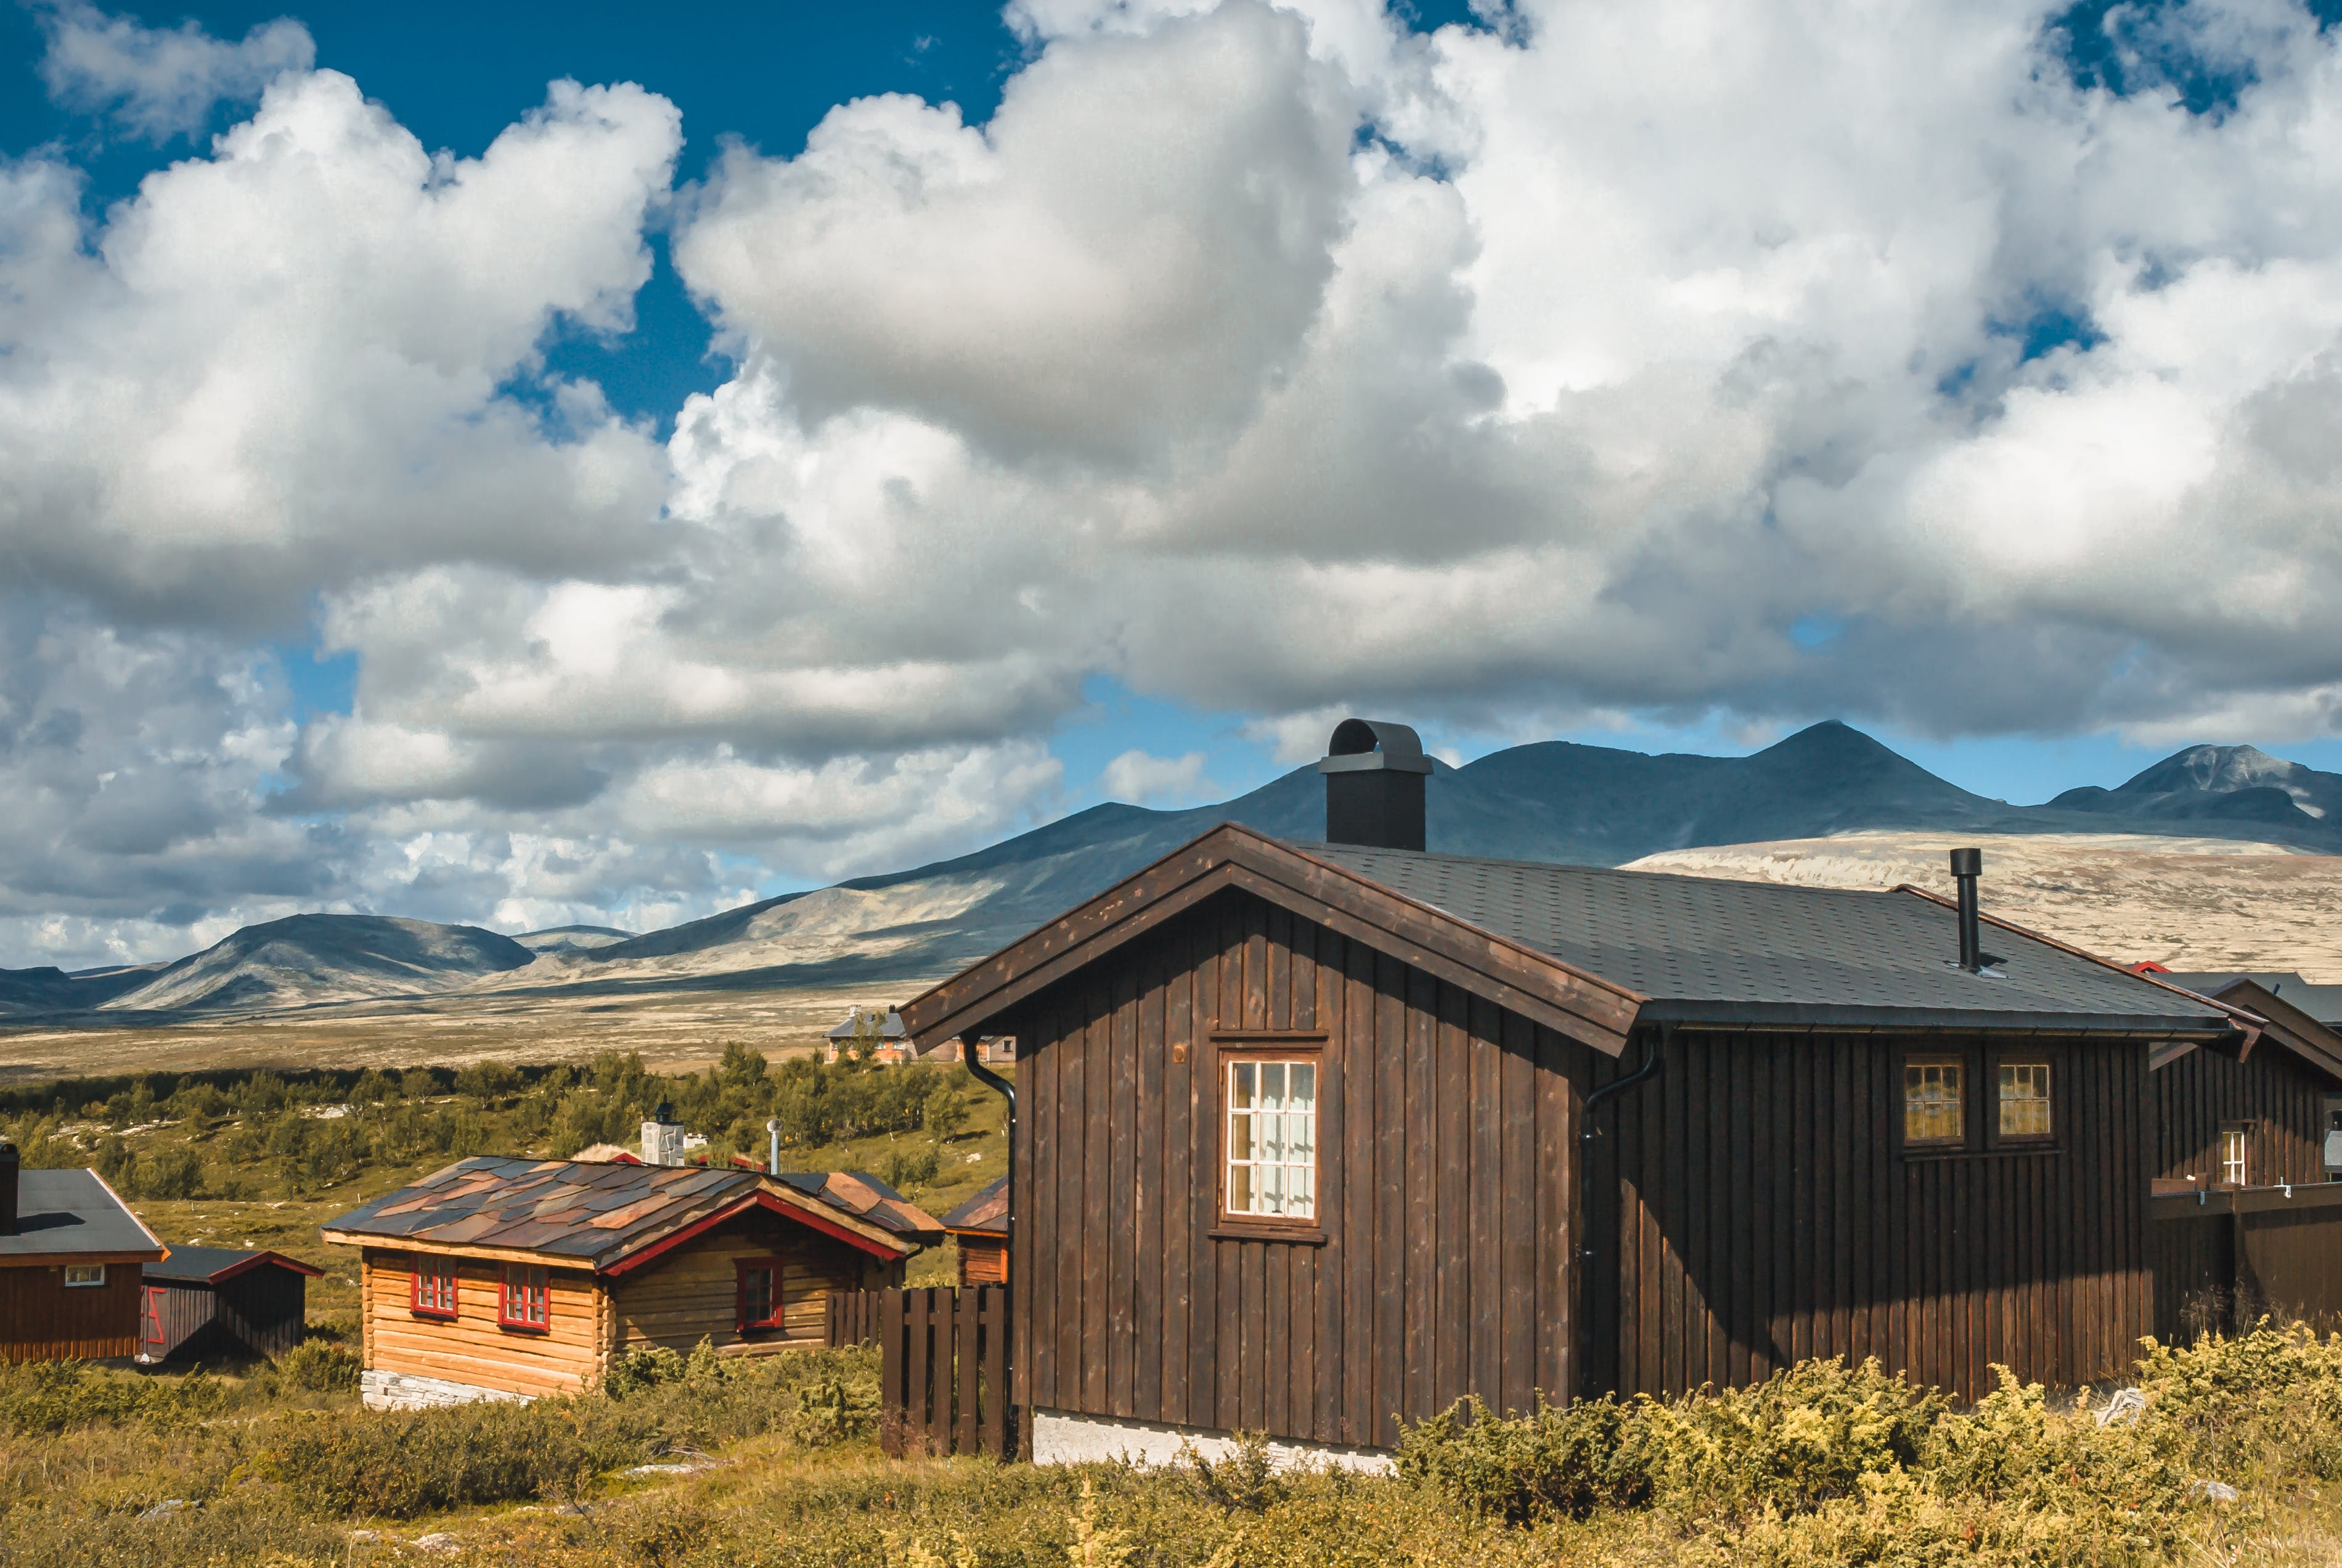 Free stock photo of norway, wooden cabin, wooden house